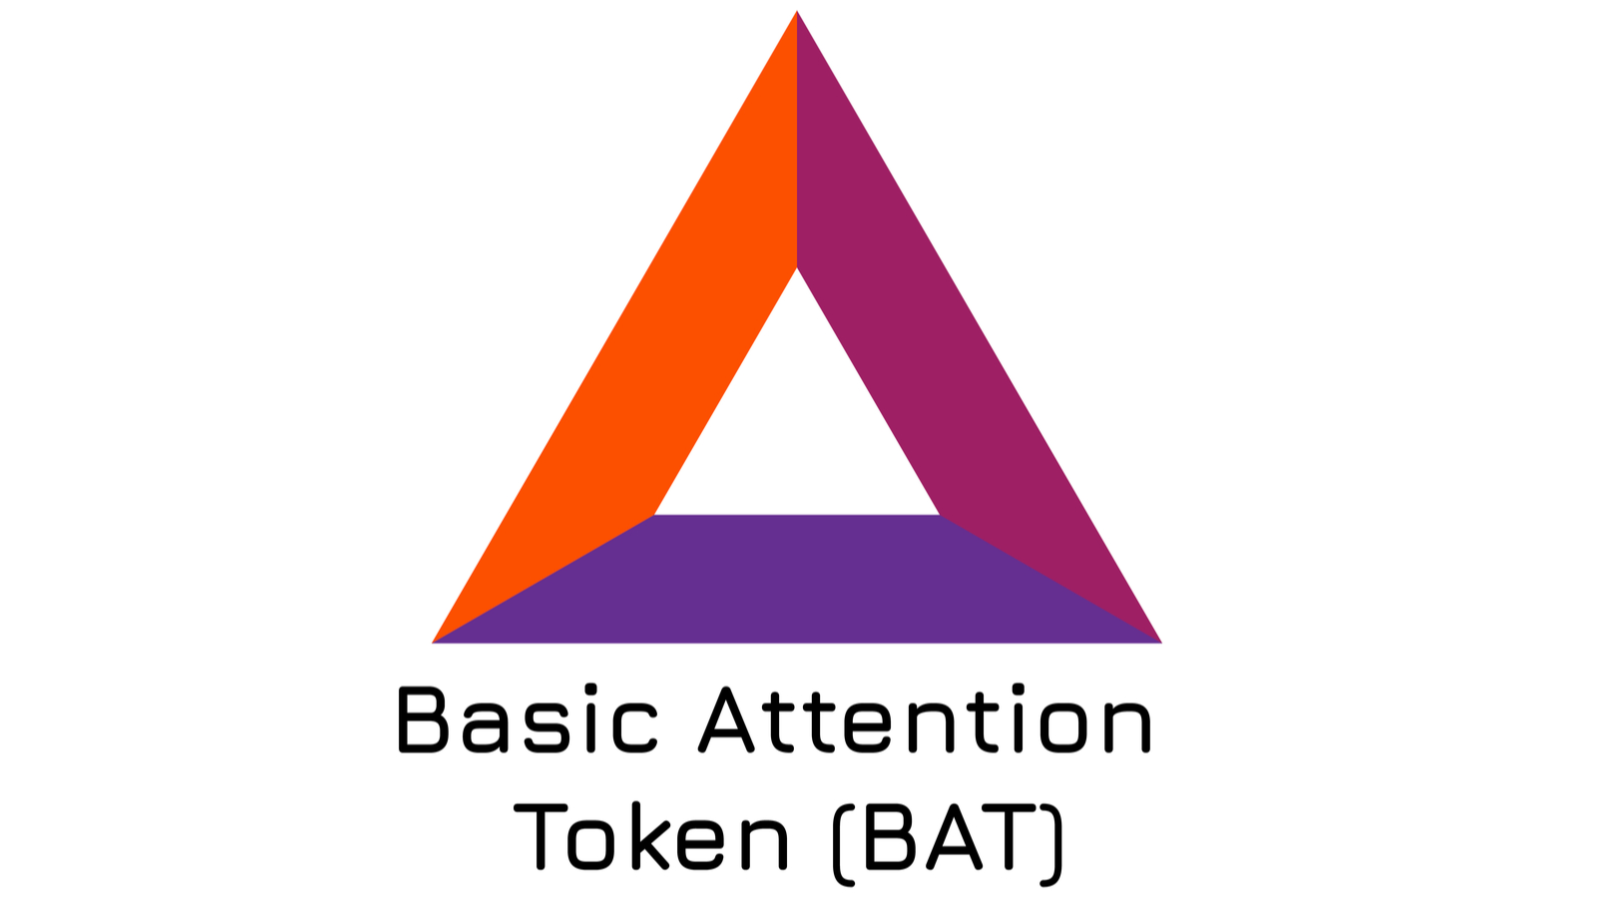 Basic Attention Token Image